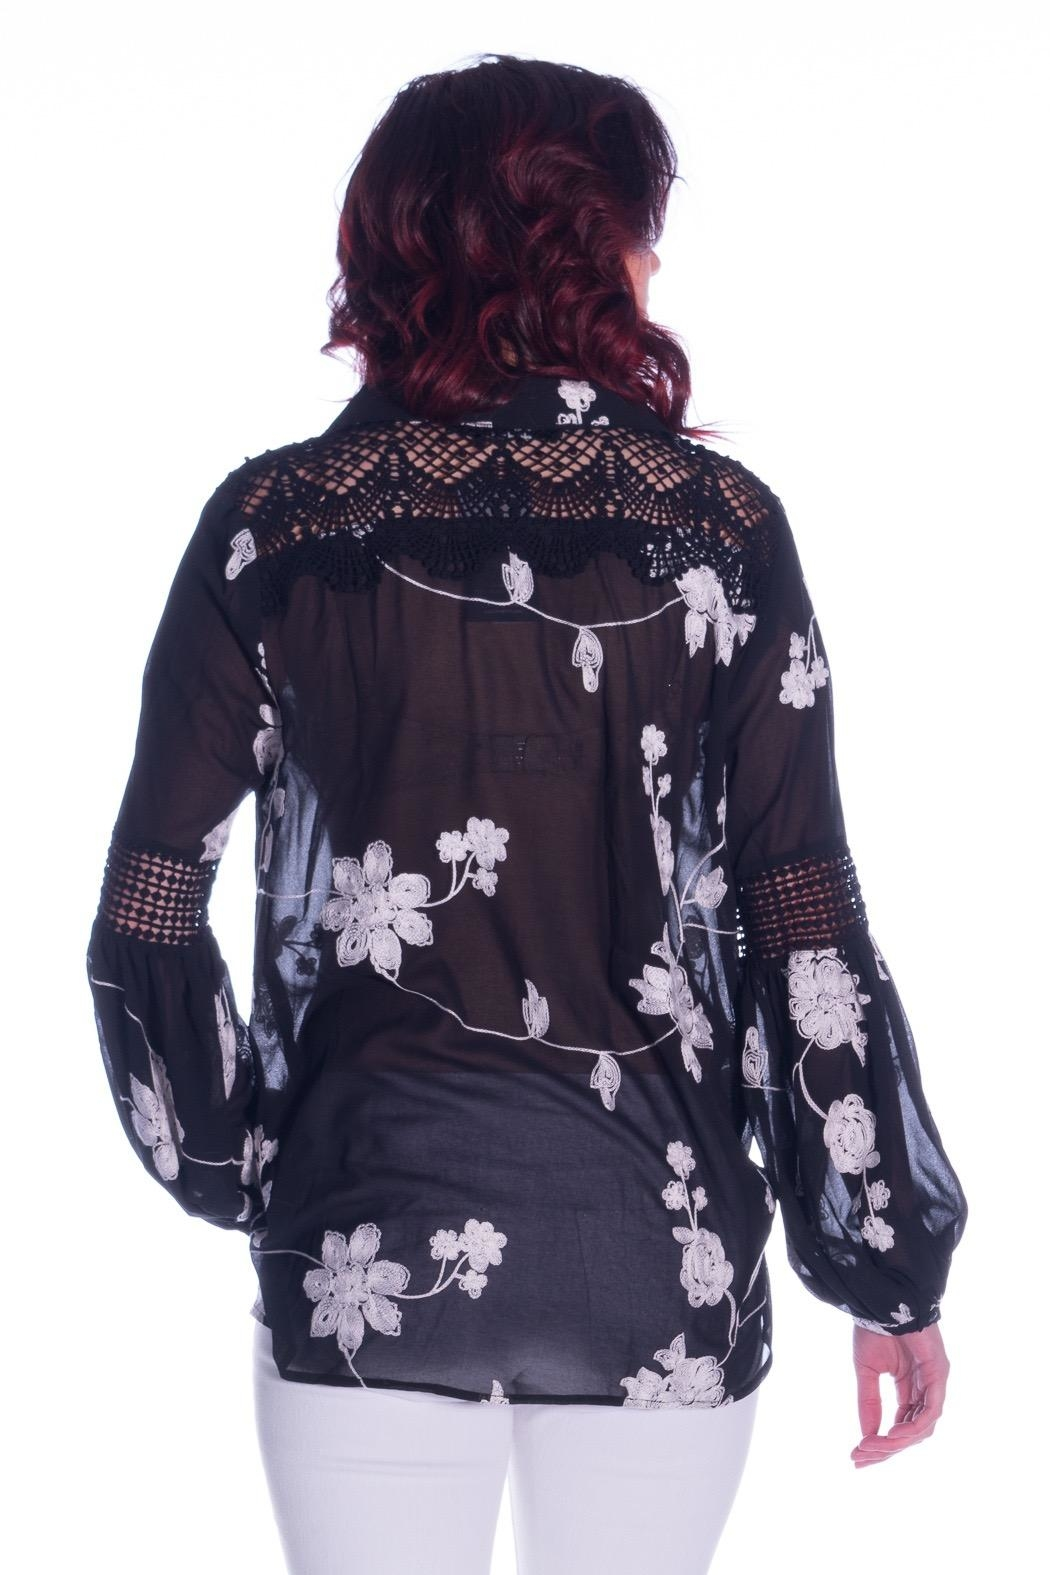 Ark & Co. Lace Embroidered Top - Back Cropped Image